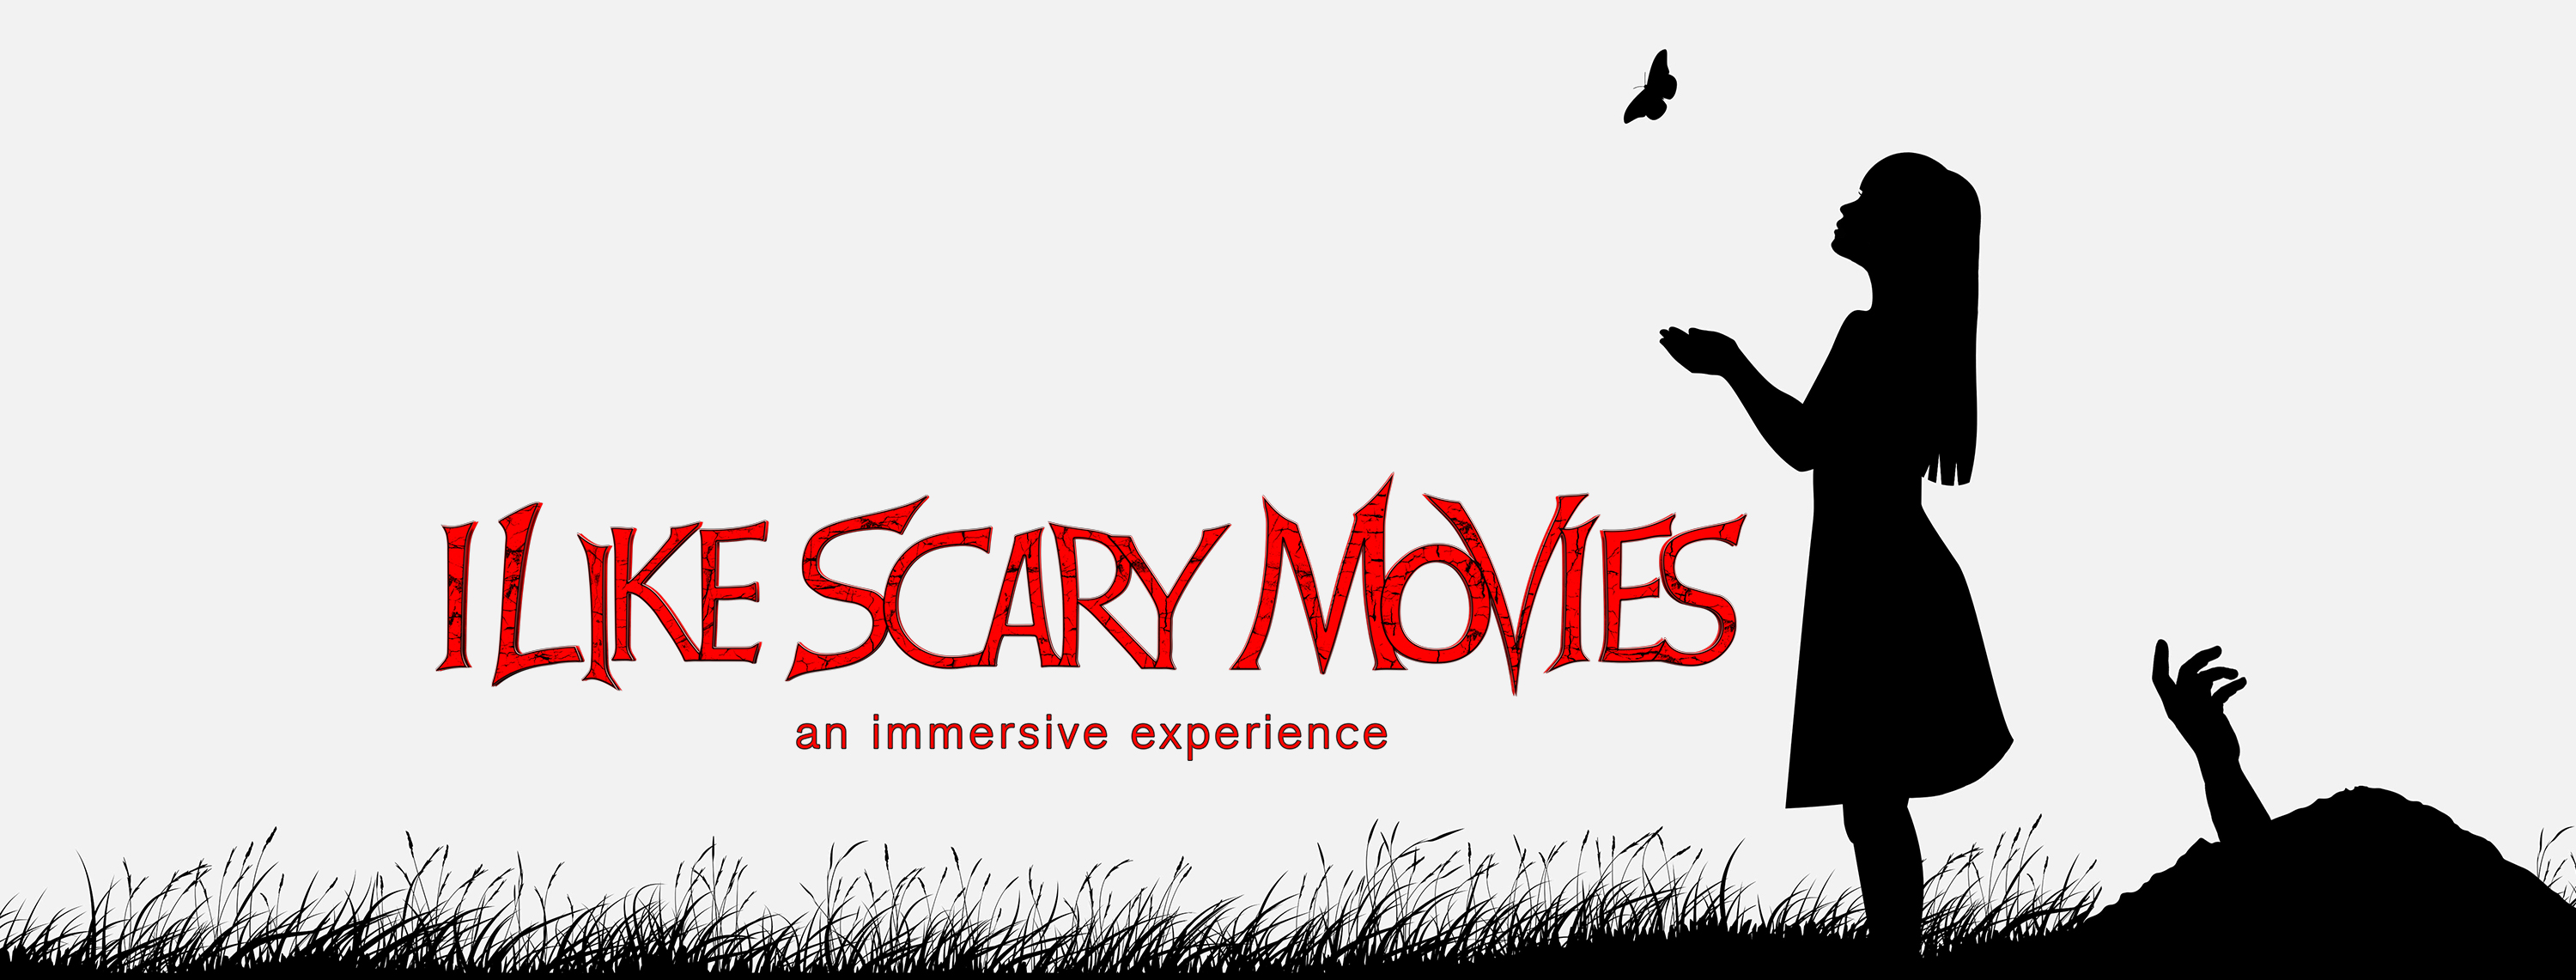 I Like Scary Movies' is an Immersive Experience that Celebrates